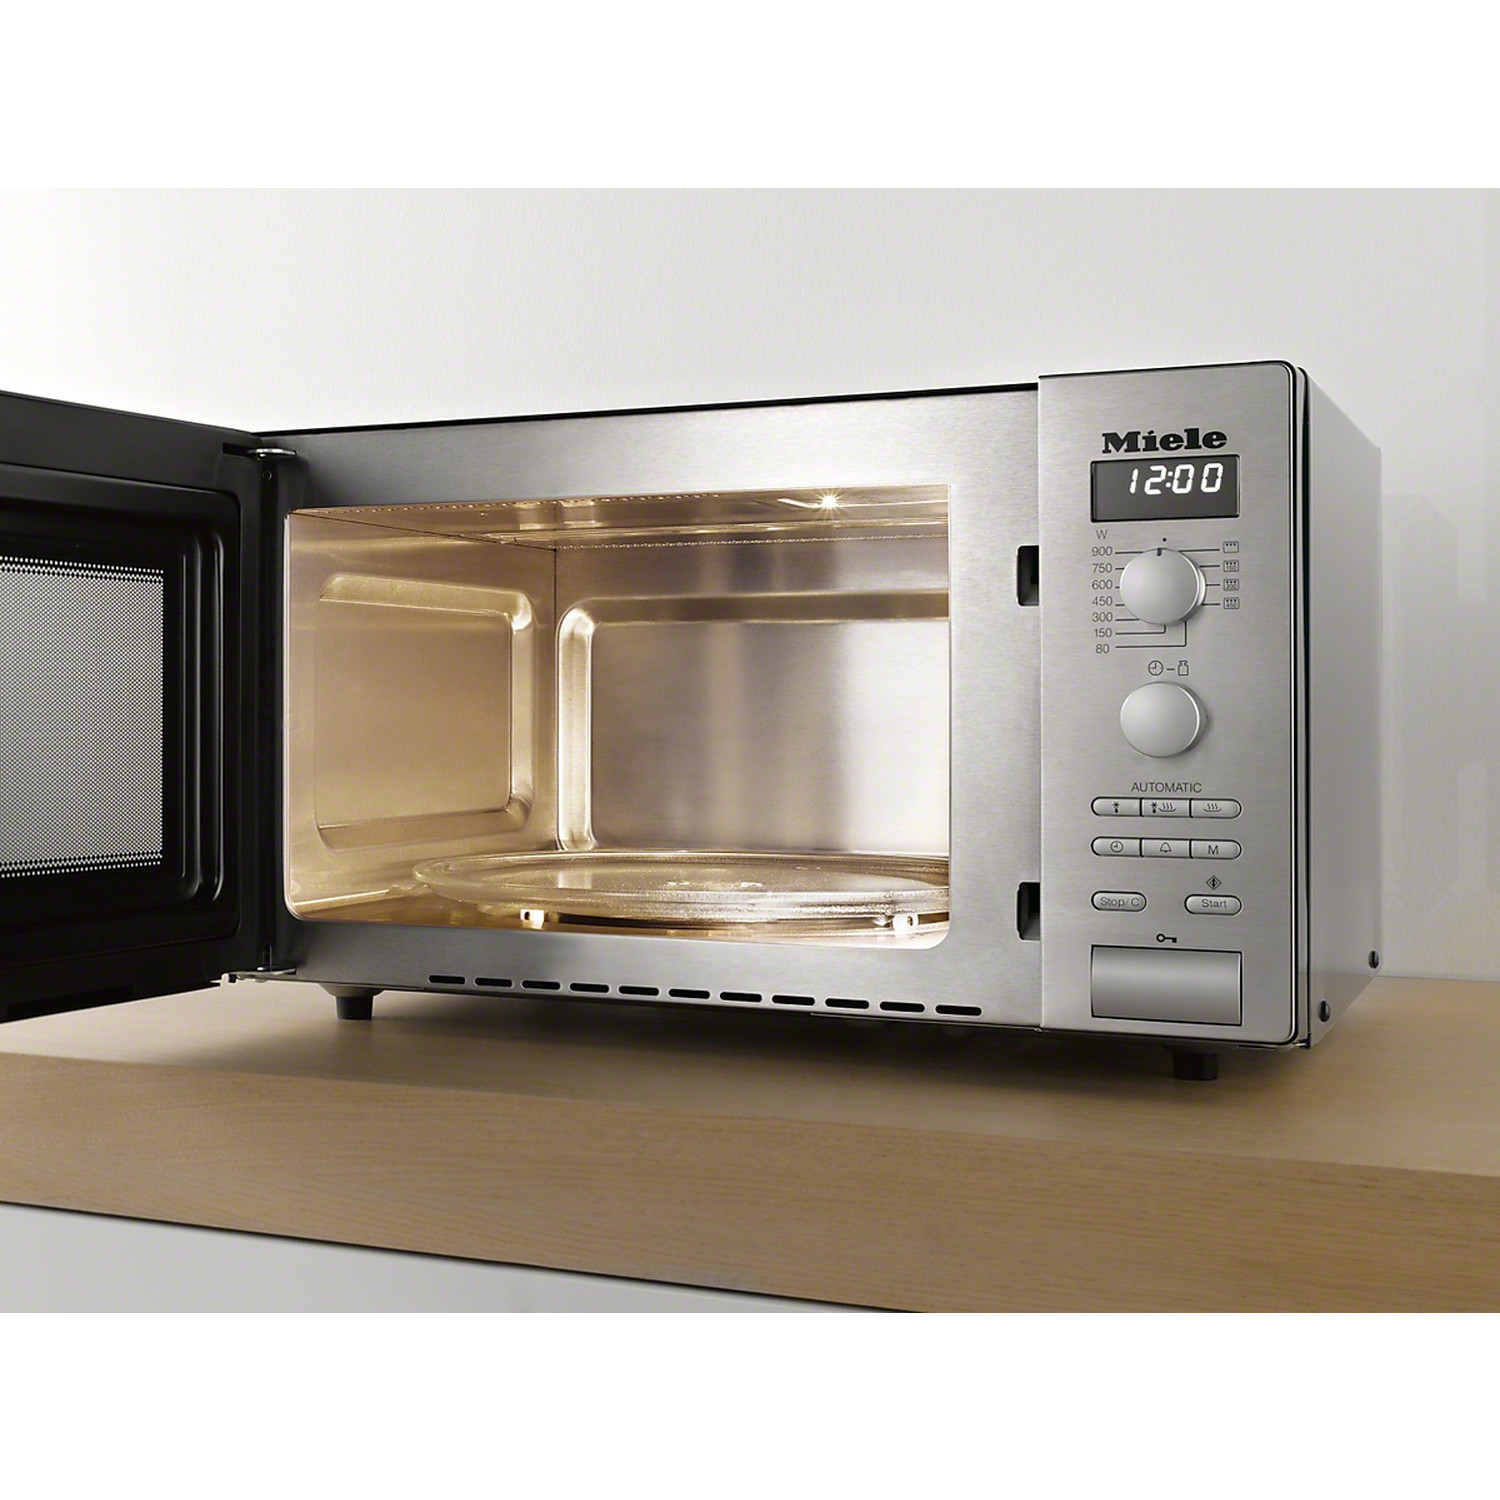 Miele M 6012 C/S MICROWAVE OVEN FREESTANDING